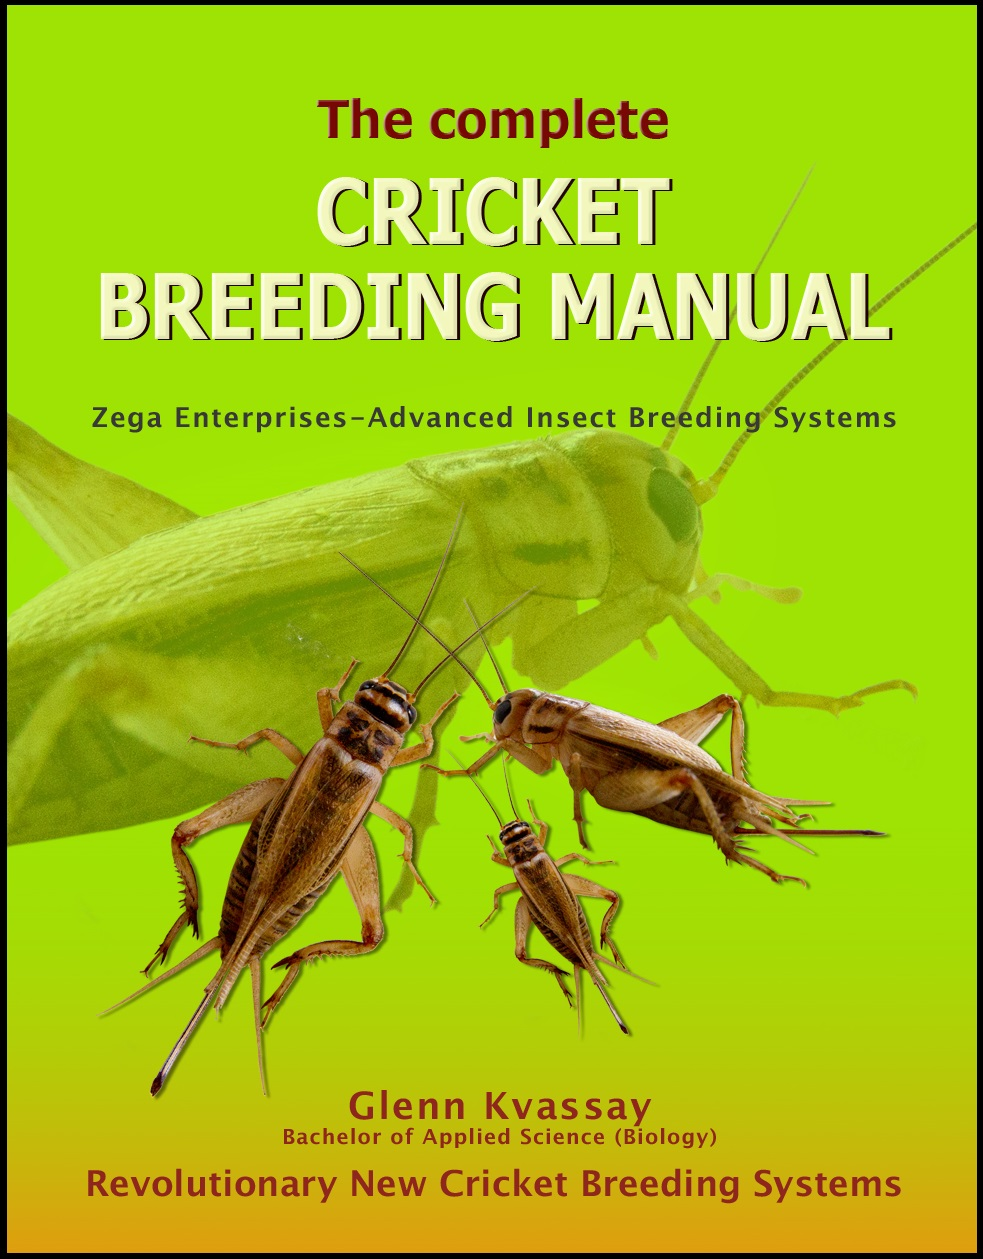 The Complete Cricket Breeding Manual-border